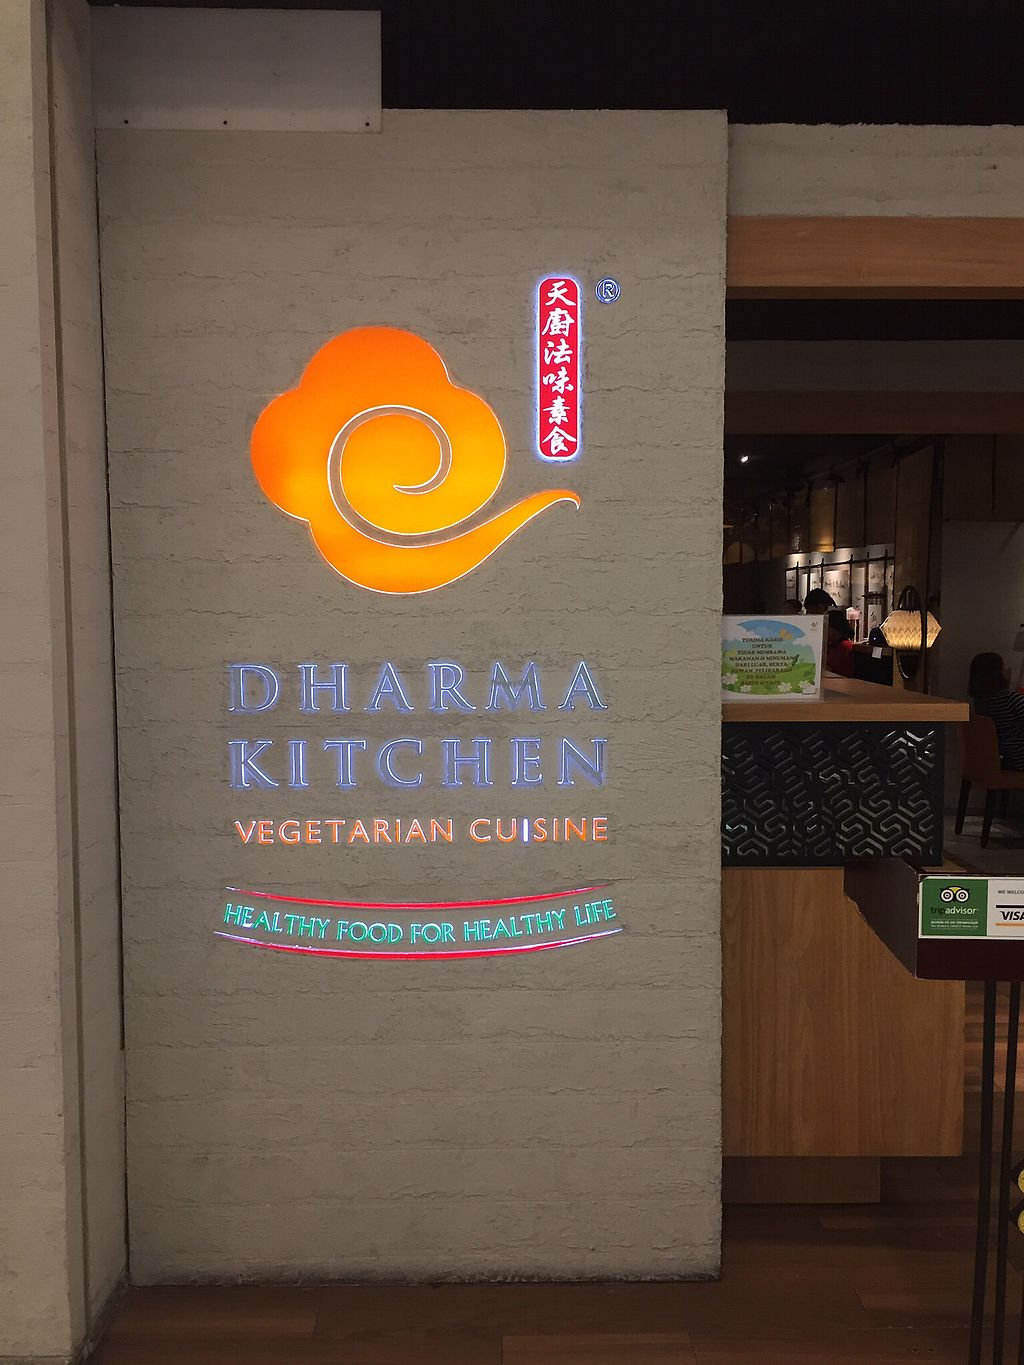 "Photo of Gedung Dharma Kitchen  by <a href=""/members/profile/ChiamLongThiam"">ChiamLongThiam</a> <br/>Shop Entrance  <br/> October 1, 2017  - <a href='/contact/abuse/image/101760/310463'>Report</a>"